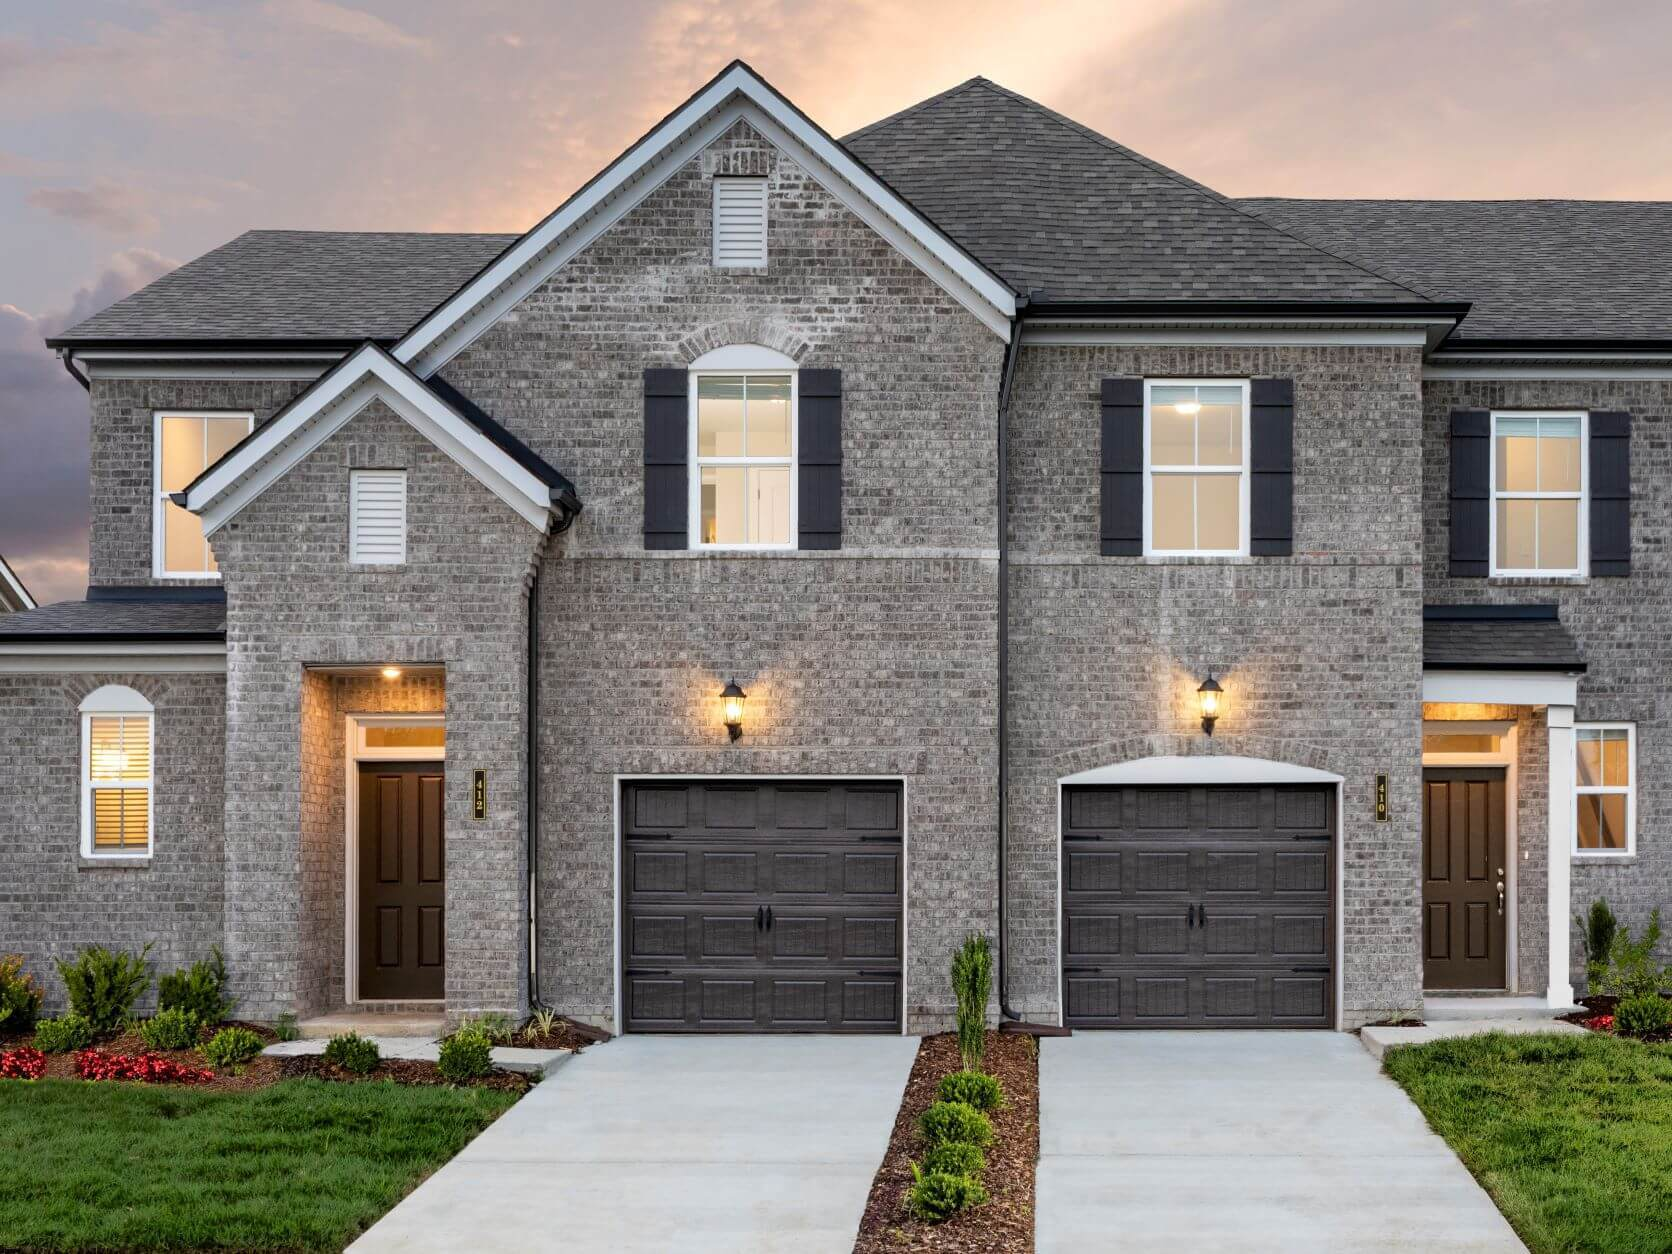 The Beckett townhomes features 3 bedrooms and a stunning open-concept floorplan.